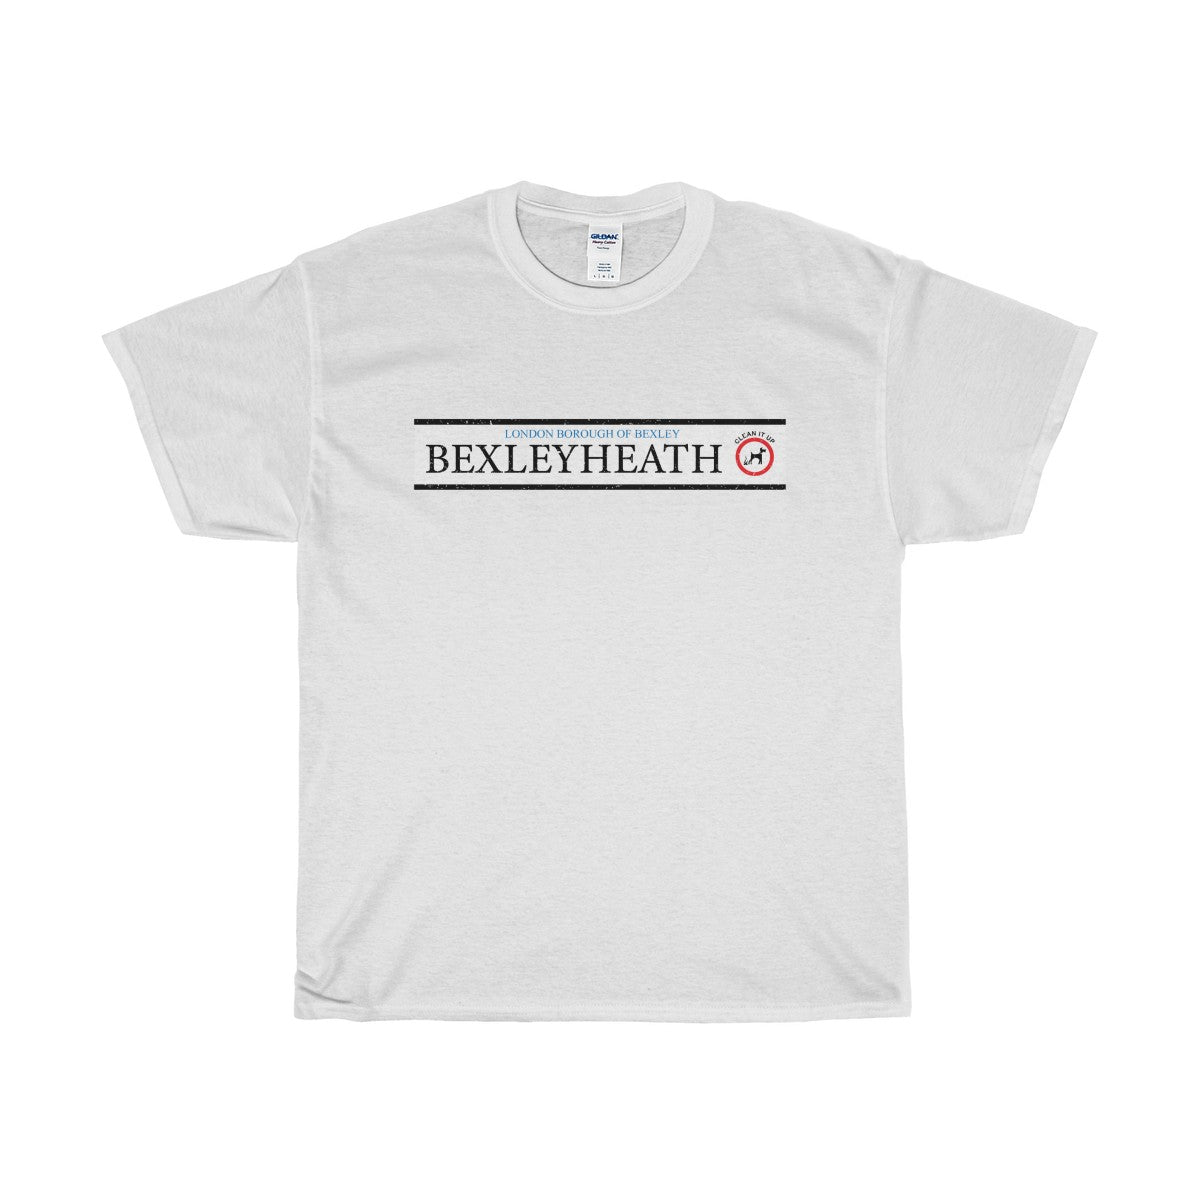 Bexleyheath Road Sign T-Shirt